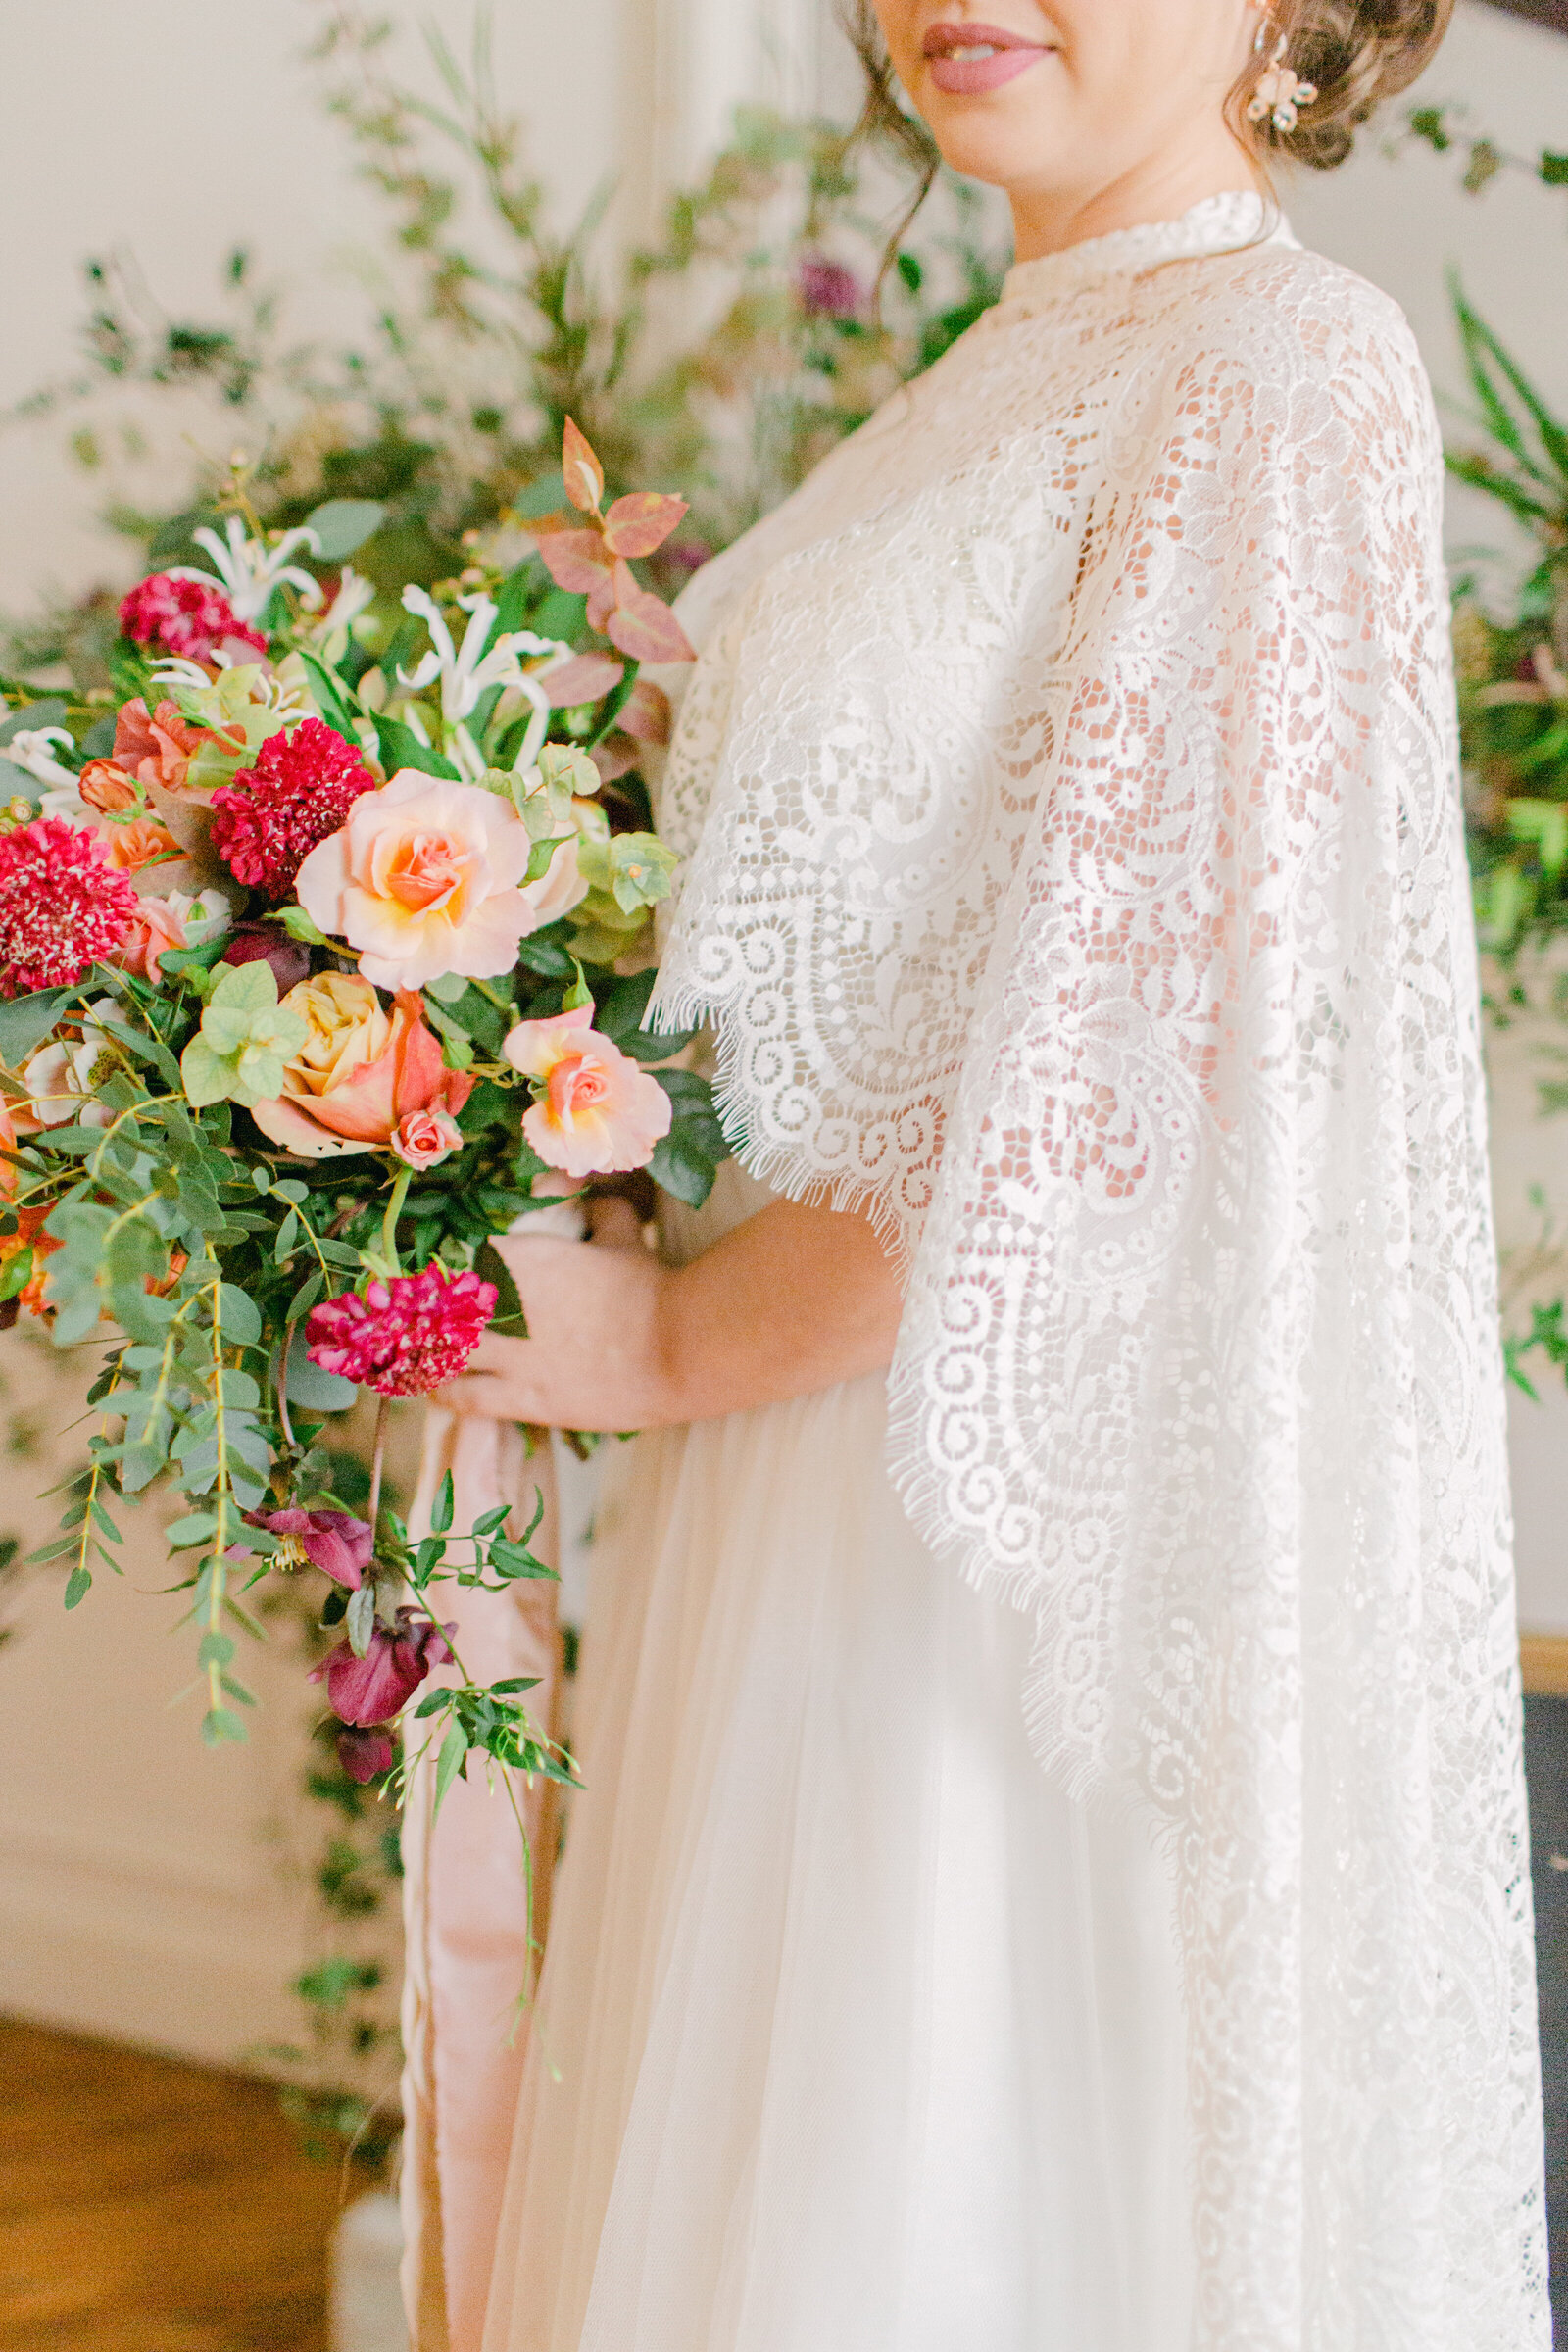 bride holding bouquet of flowers wearing a lace cape and standing in front of a fireplace mantel in paris apartment